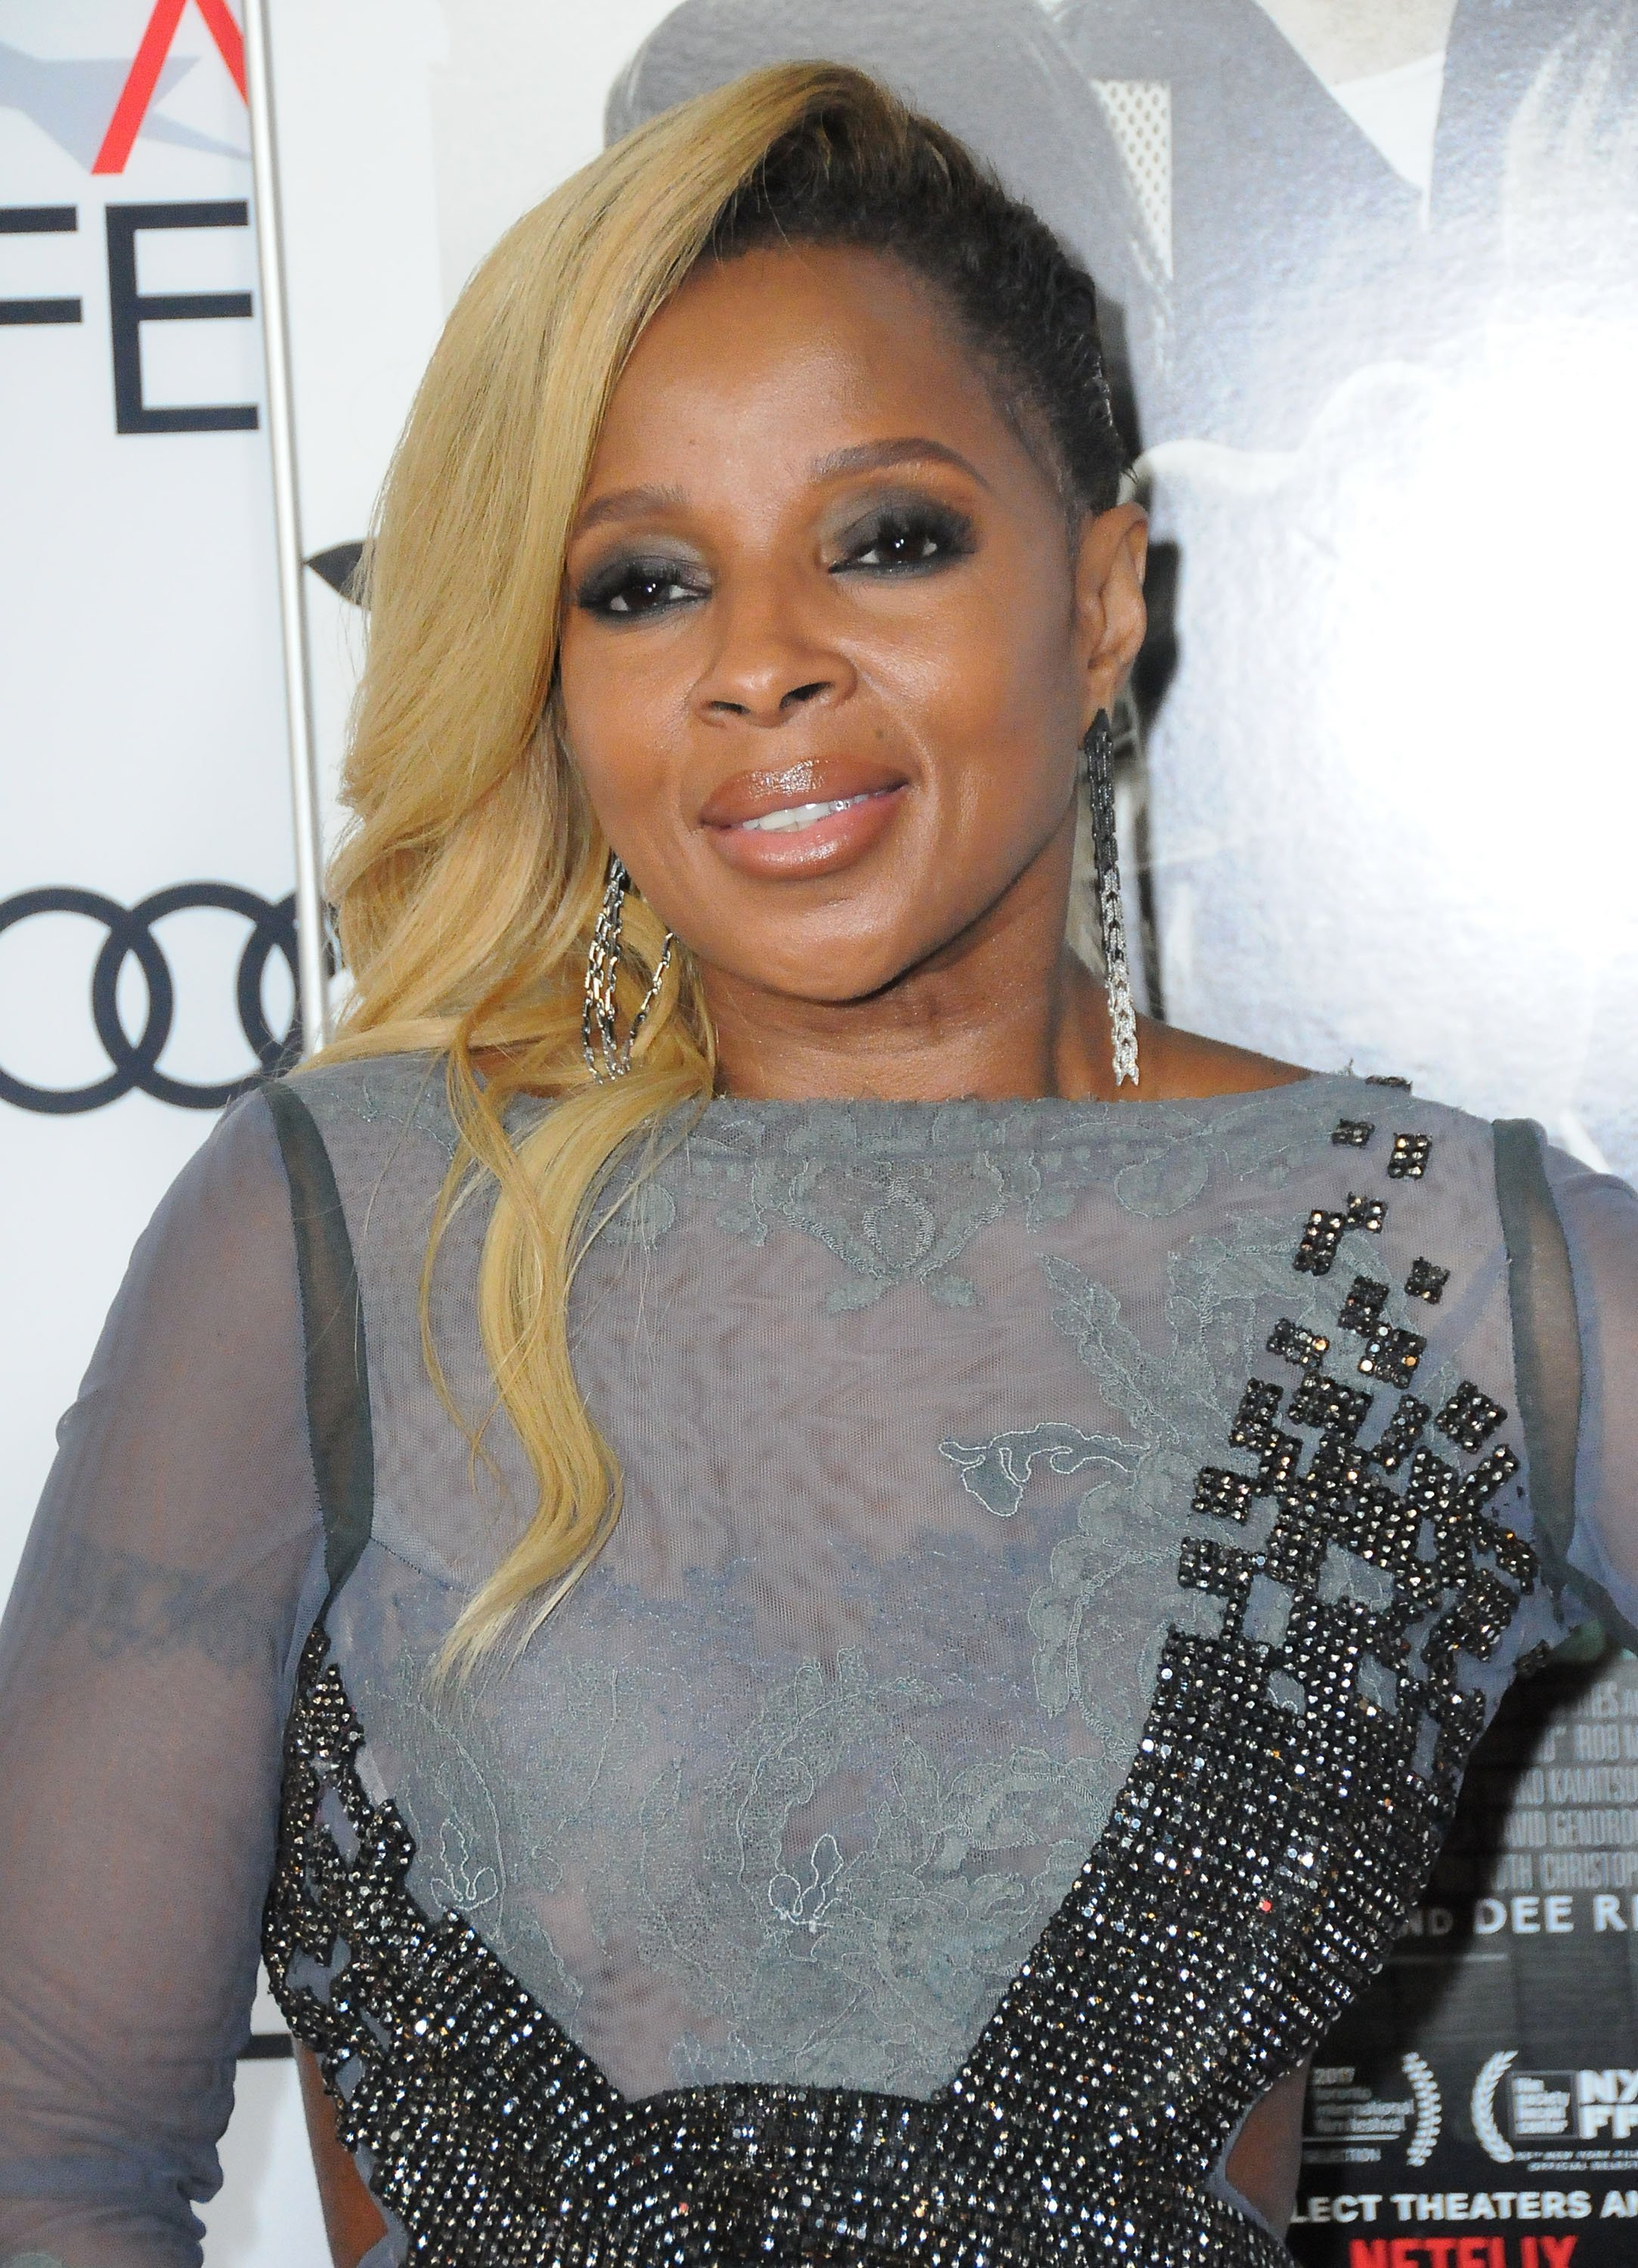 """Mary J Blige at the screening of Netflix's """"Mudbound"""" in November 2017. 